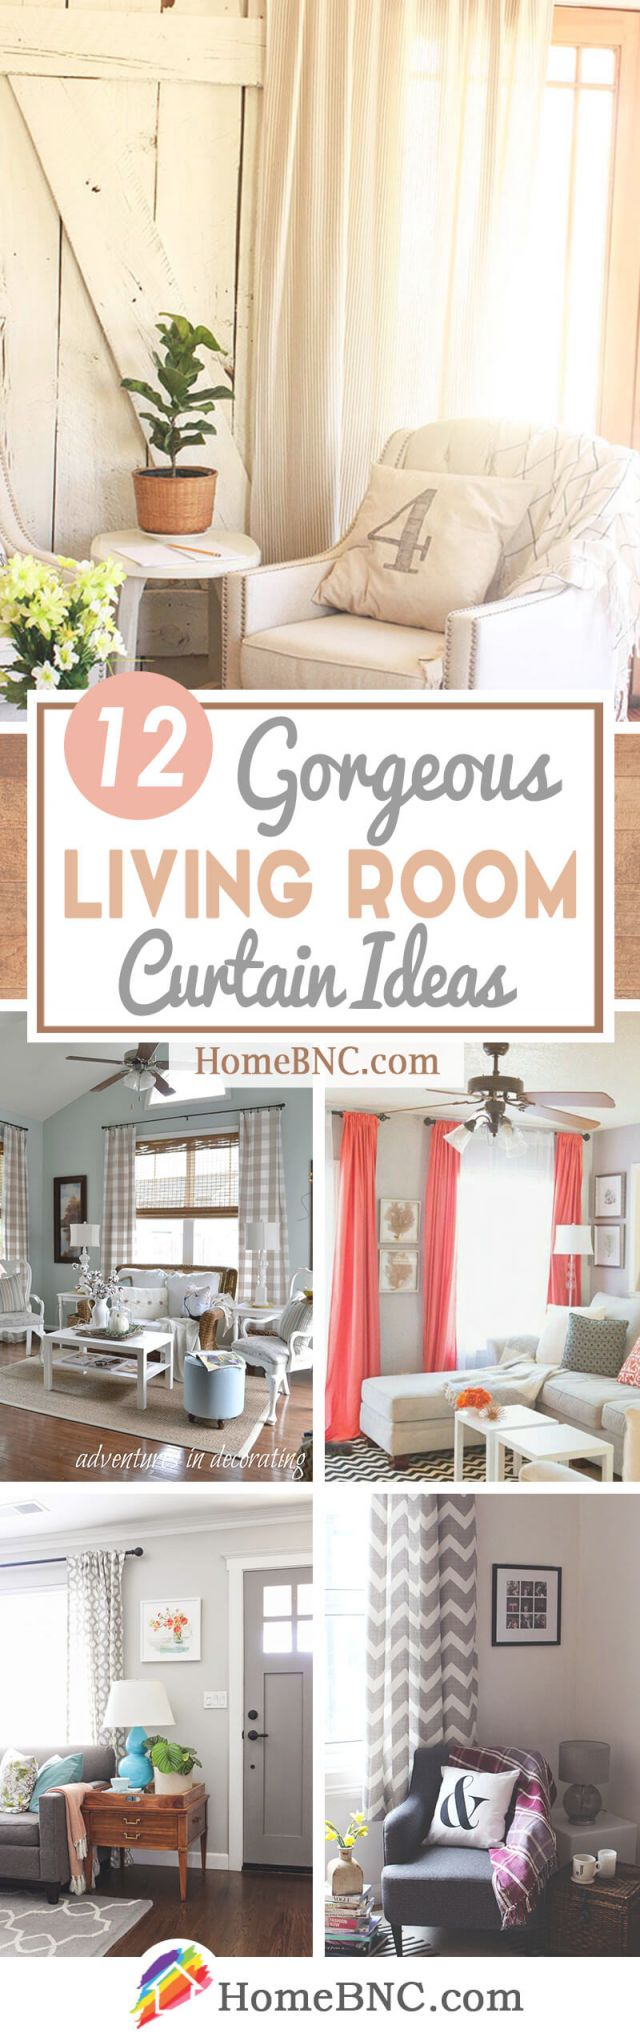 Beautiful Curtains Ideas For Living Room - Awesome Decors